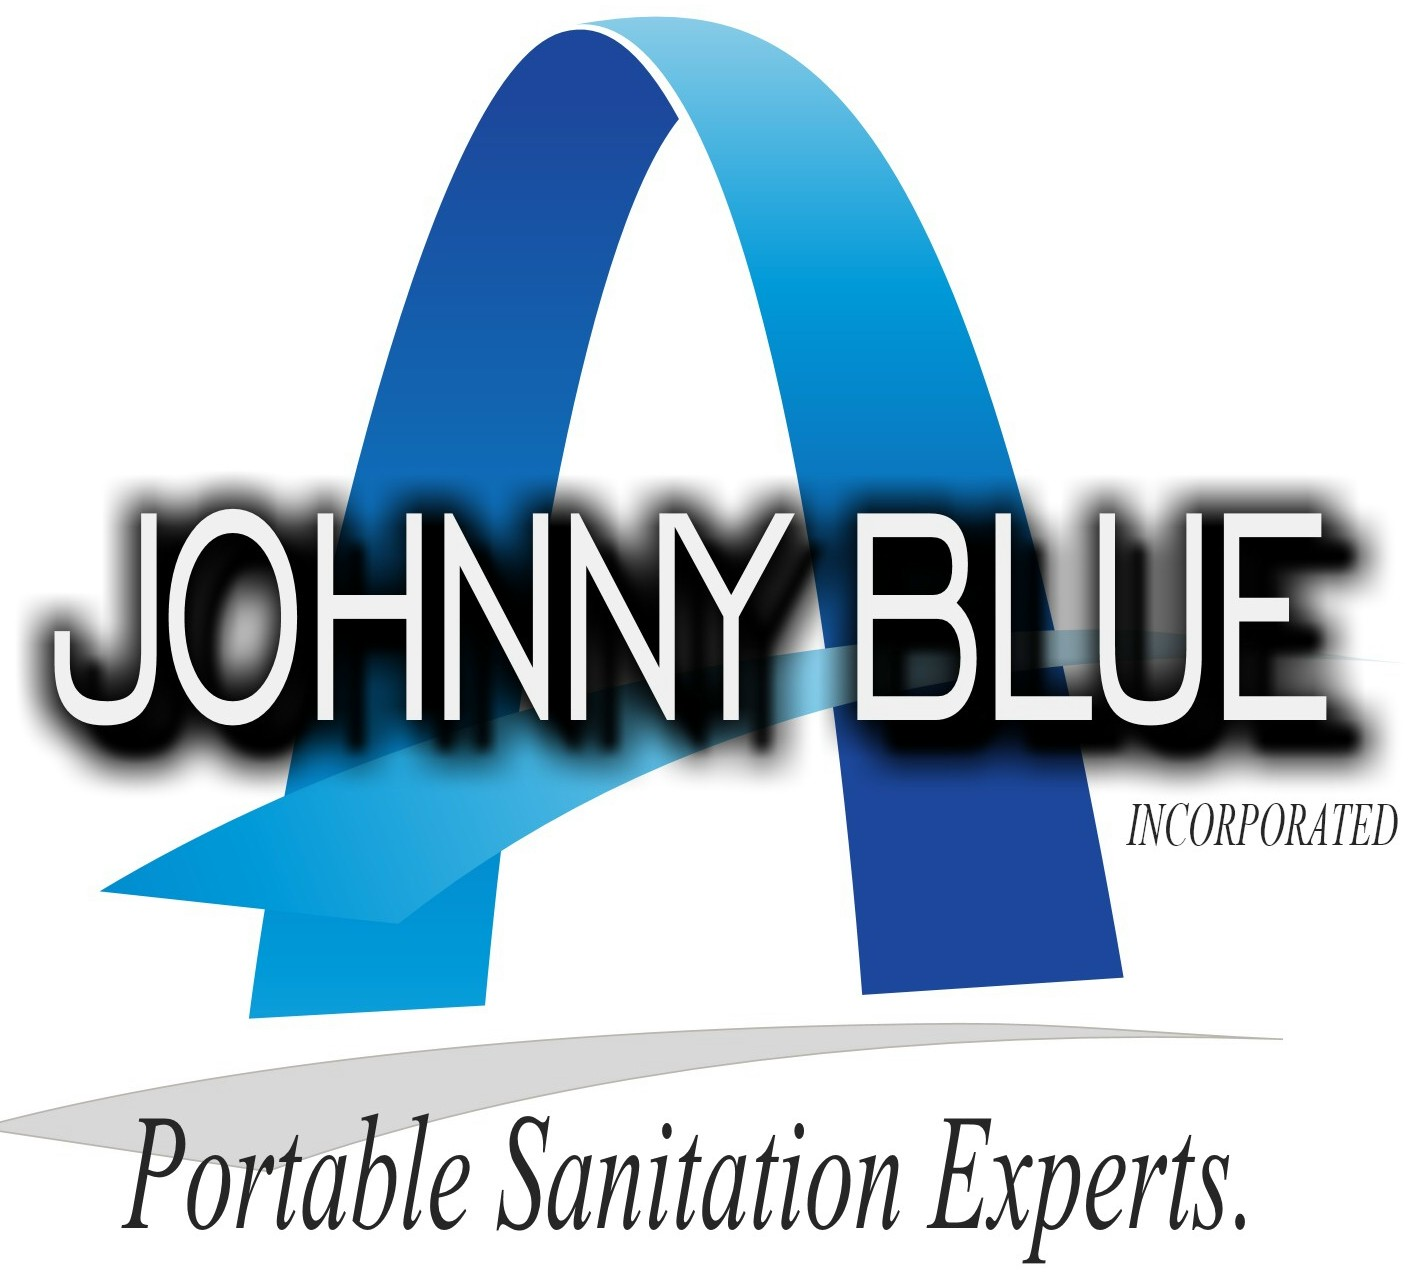 Johnny Blue Port a Johns